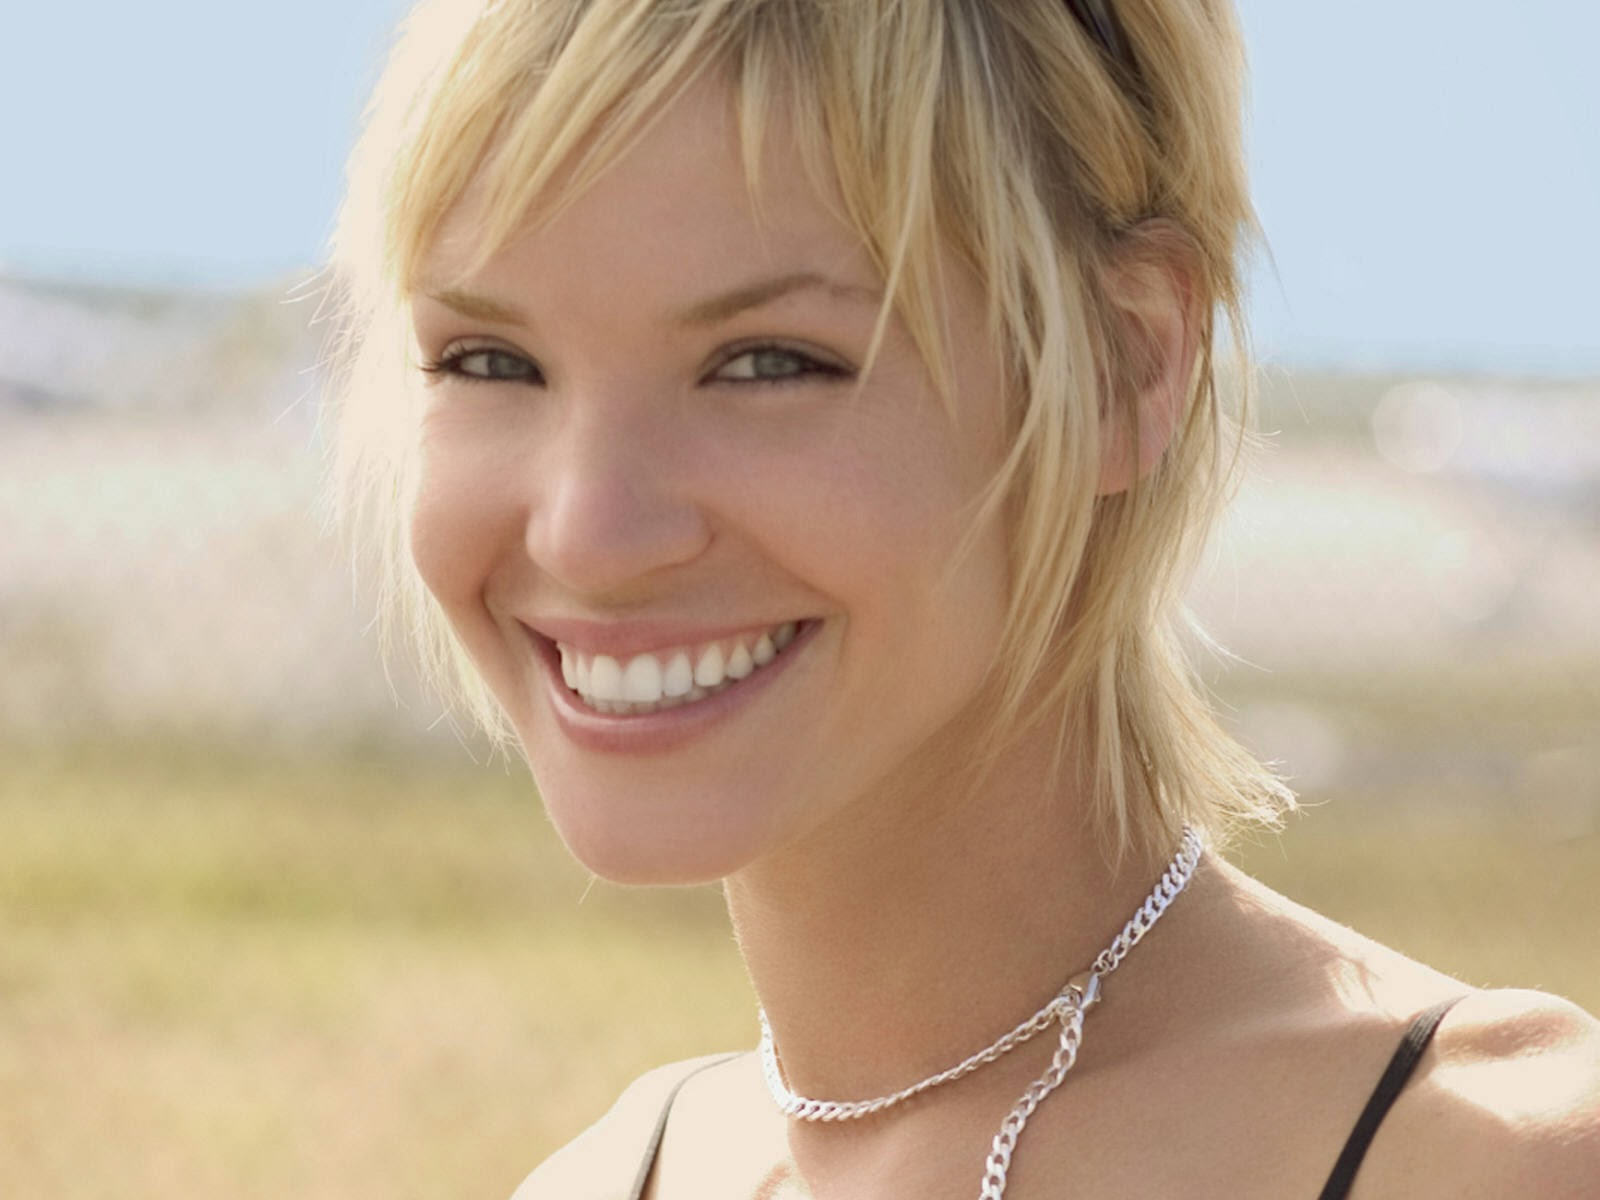 ashley scott smile computer wallpaper 61196